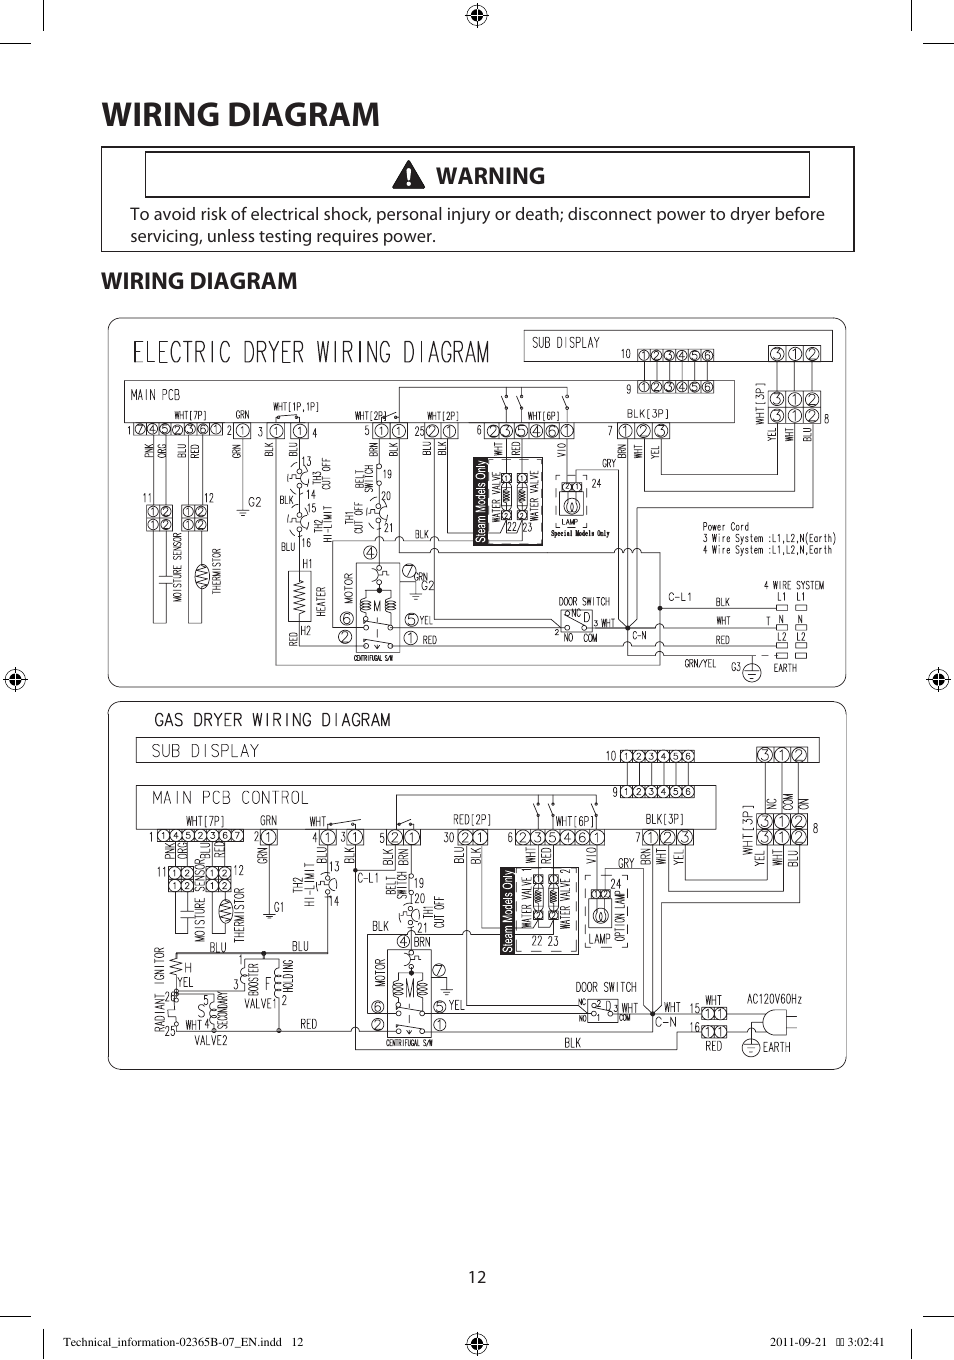 Wiring Diagram  Warning